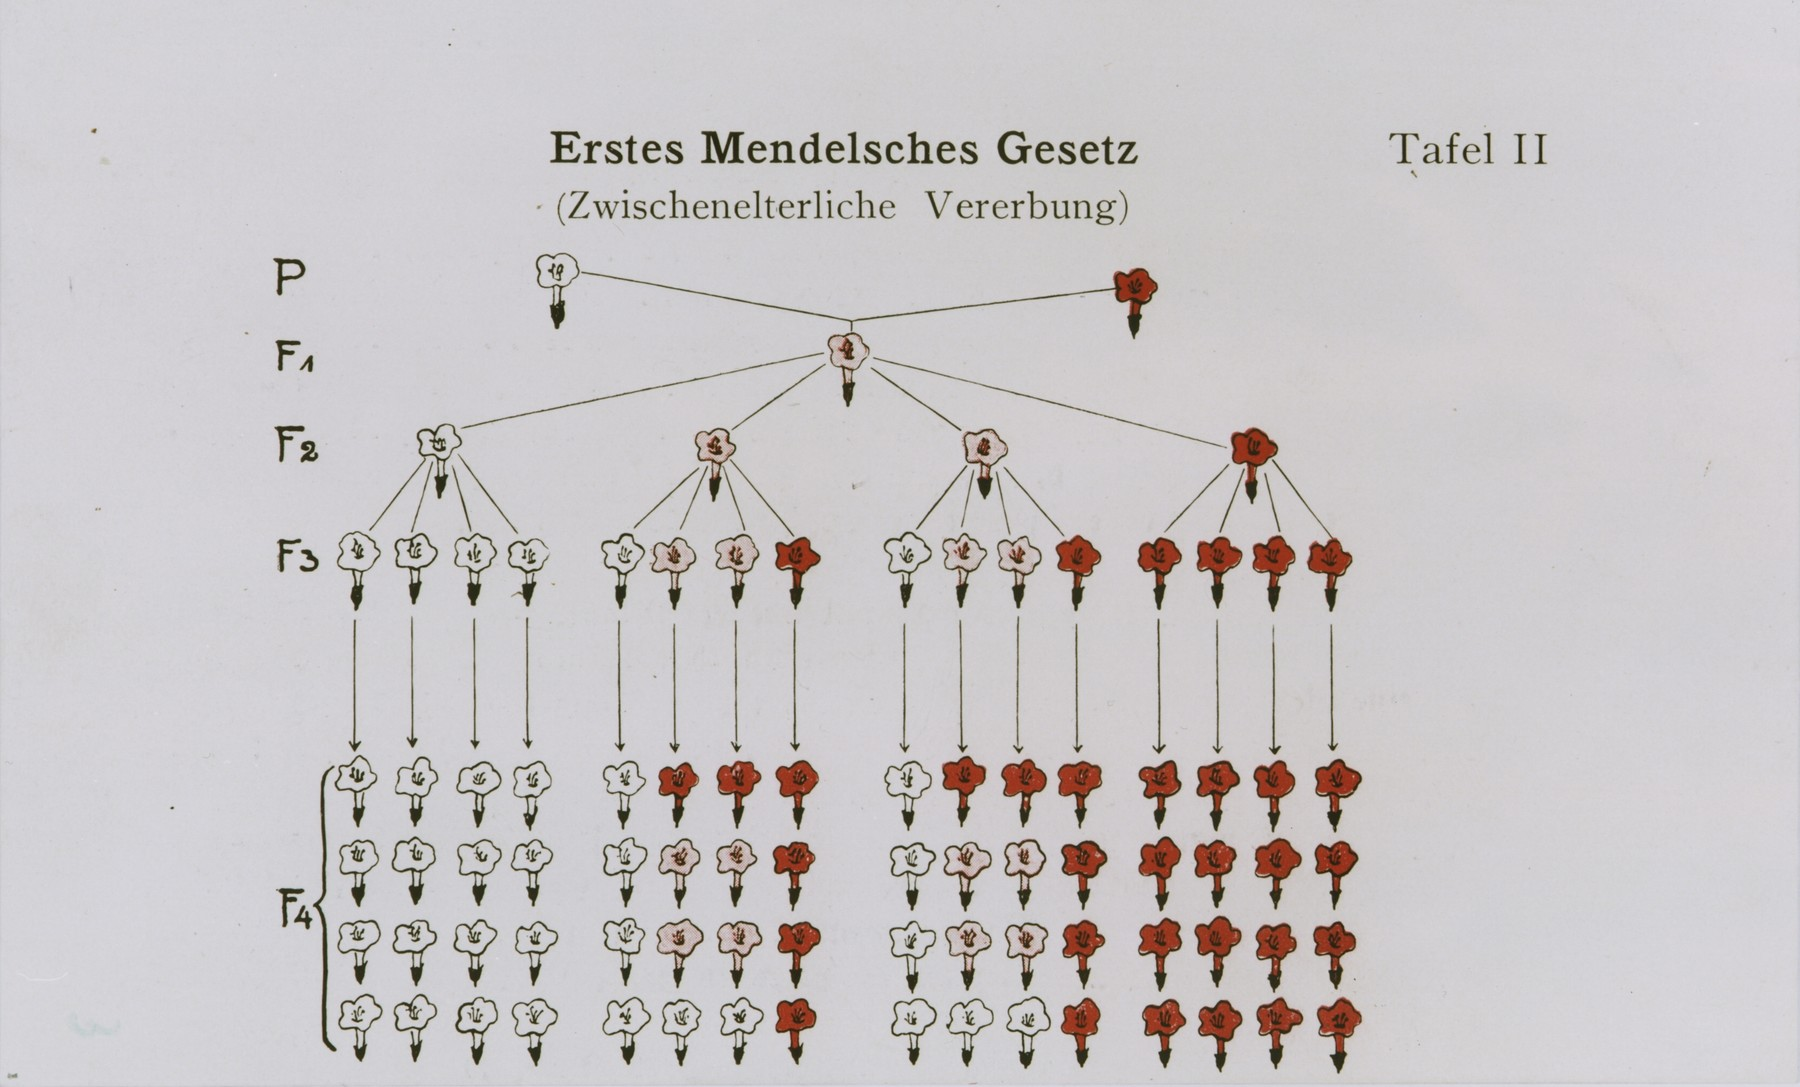 Chart illustrating Gregor Mendel's first law of heredity.